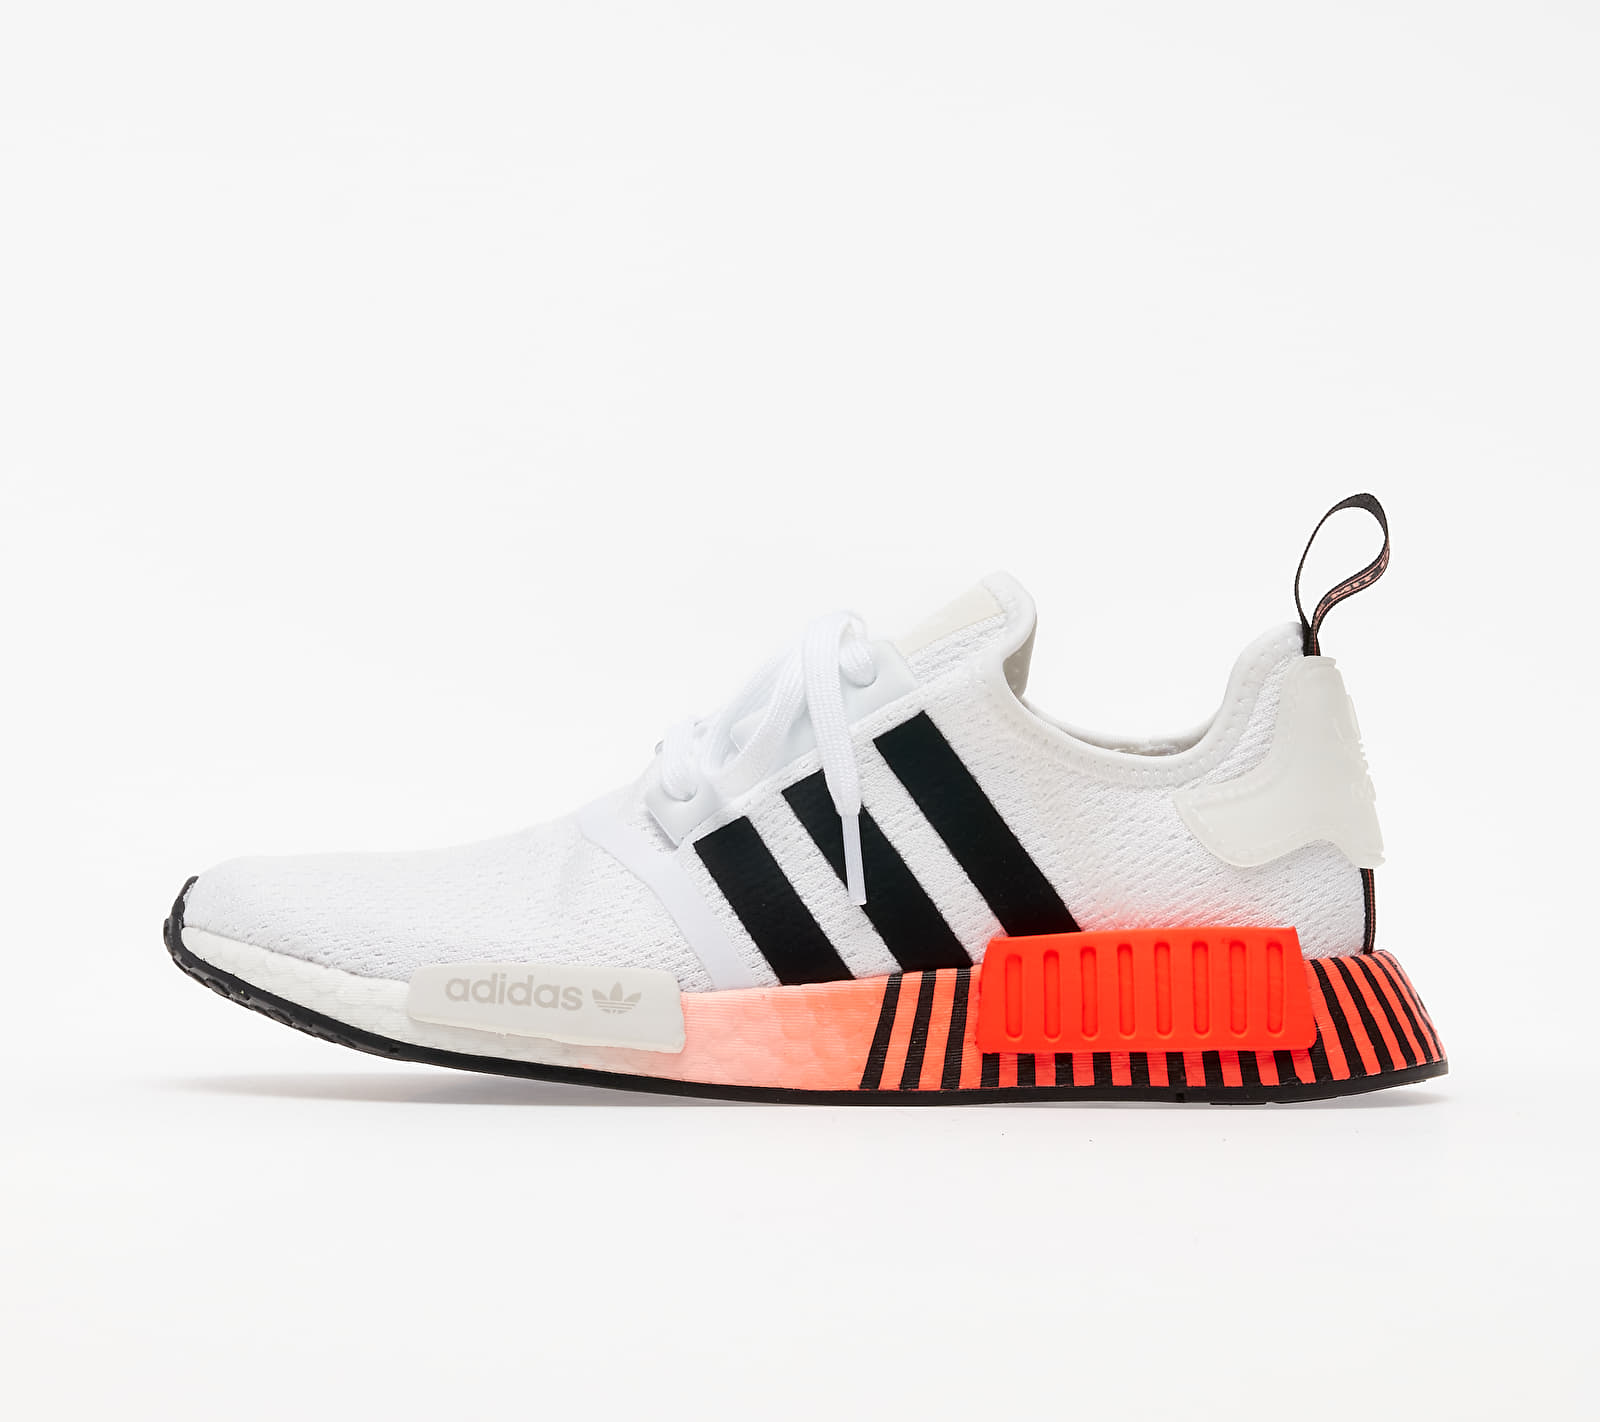 adidas NMD_R1 Ftw White/ Core Black/ Solid Red EUR 45 1/3